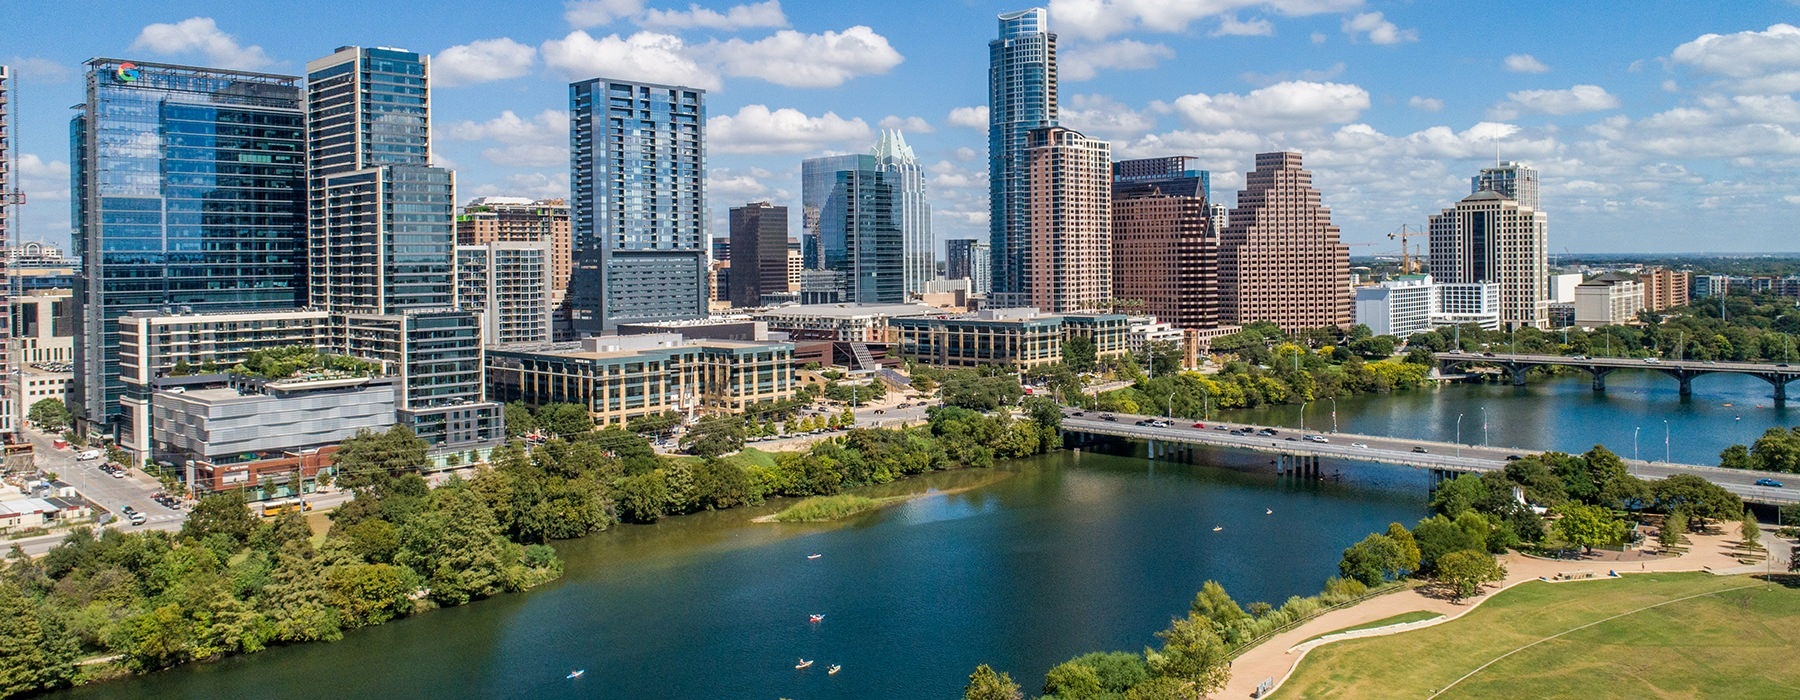 Exterior view of Austin and the river